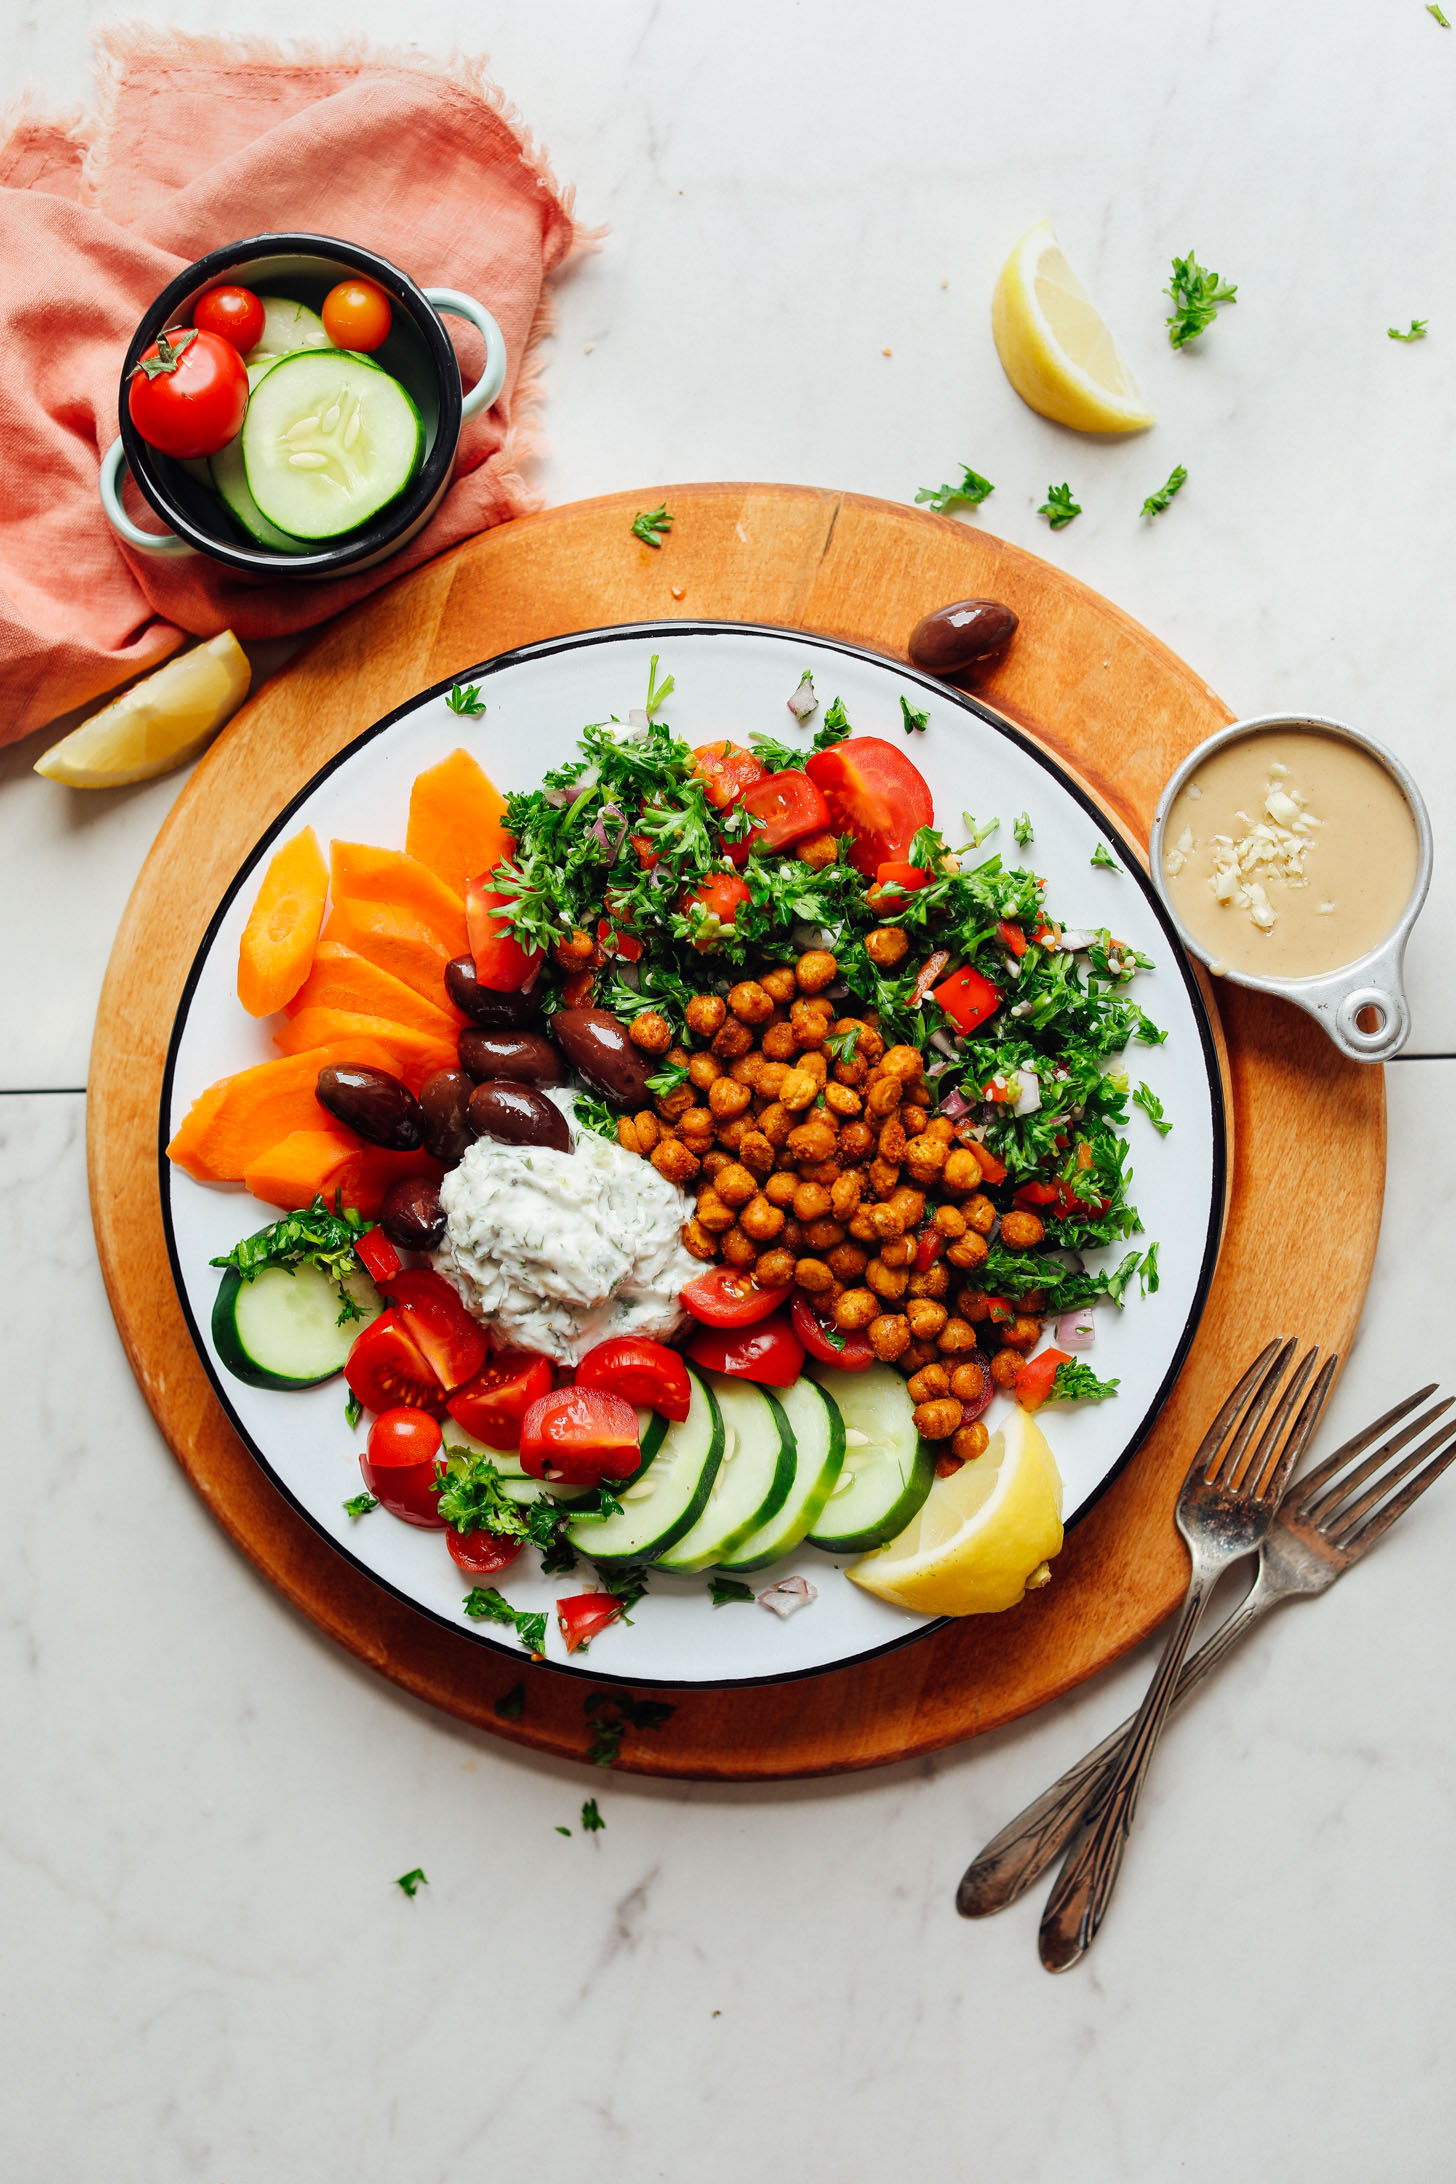 Plate filled with our Vegan Greek Bowl with Crispy Chickpeas, Vegan Tzatziki, and Veggies